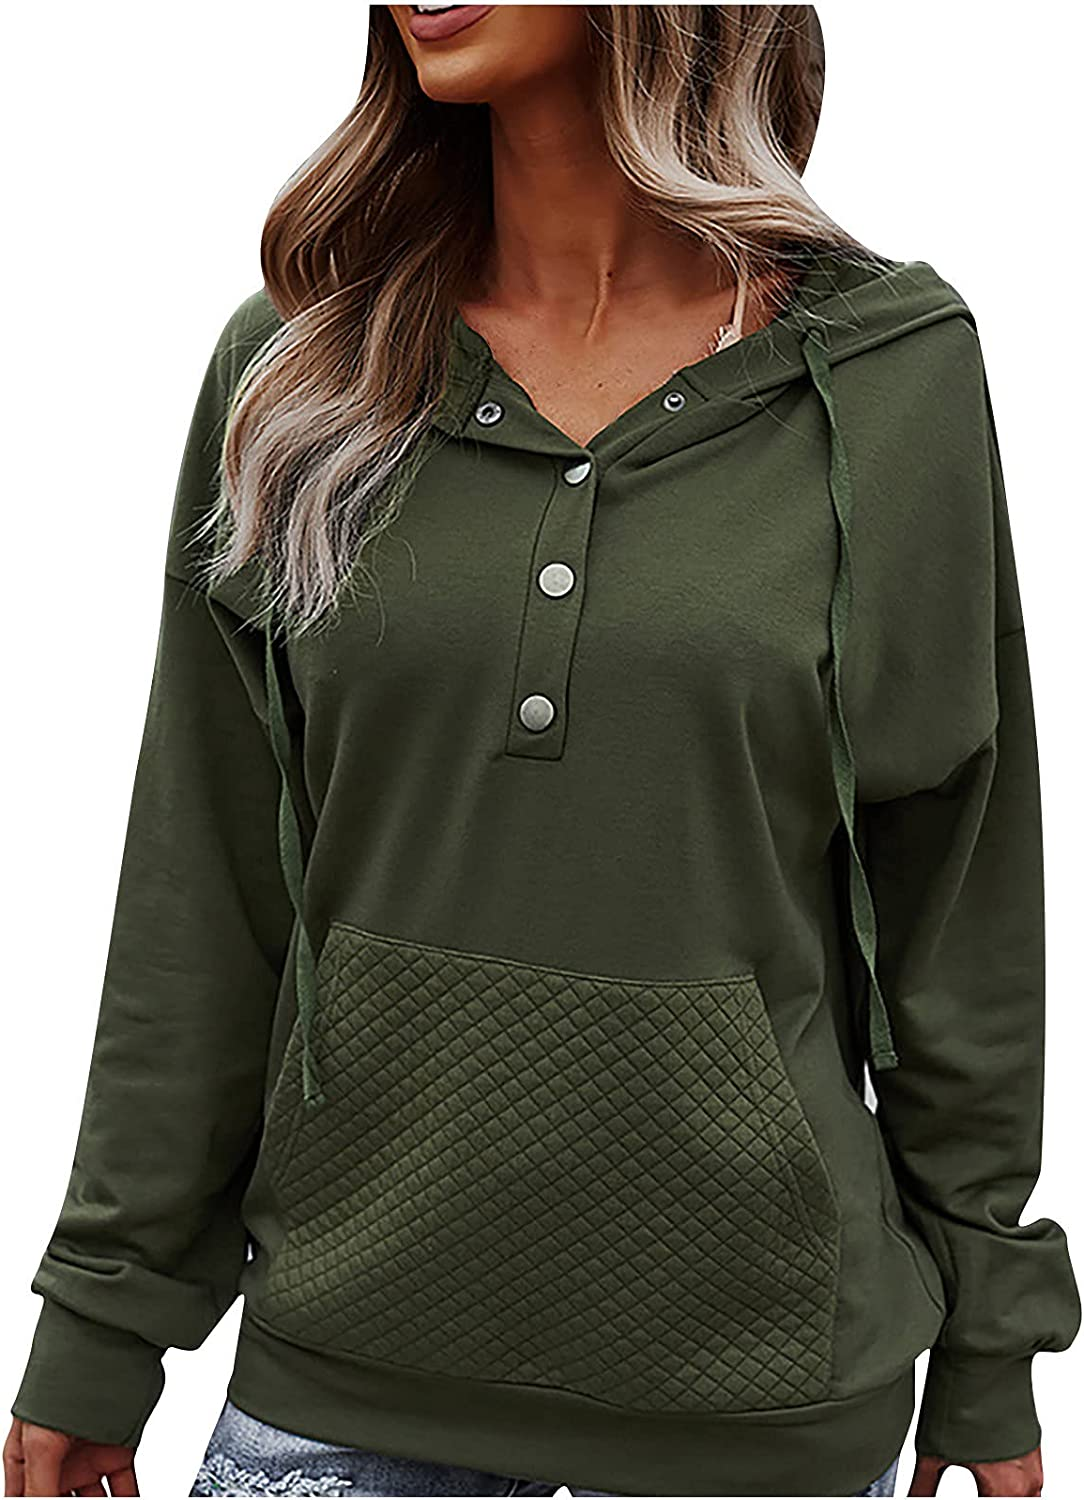 Womens Sweatshirt Soild Button Up Casual Long Sleeve Tshirts Oversized Comfy Pullover Patchwork Tops with Pocket